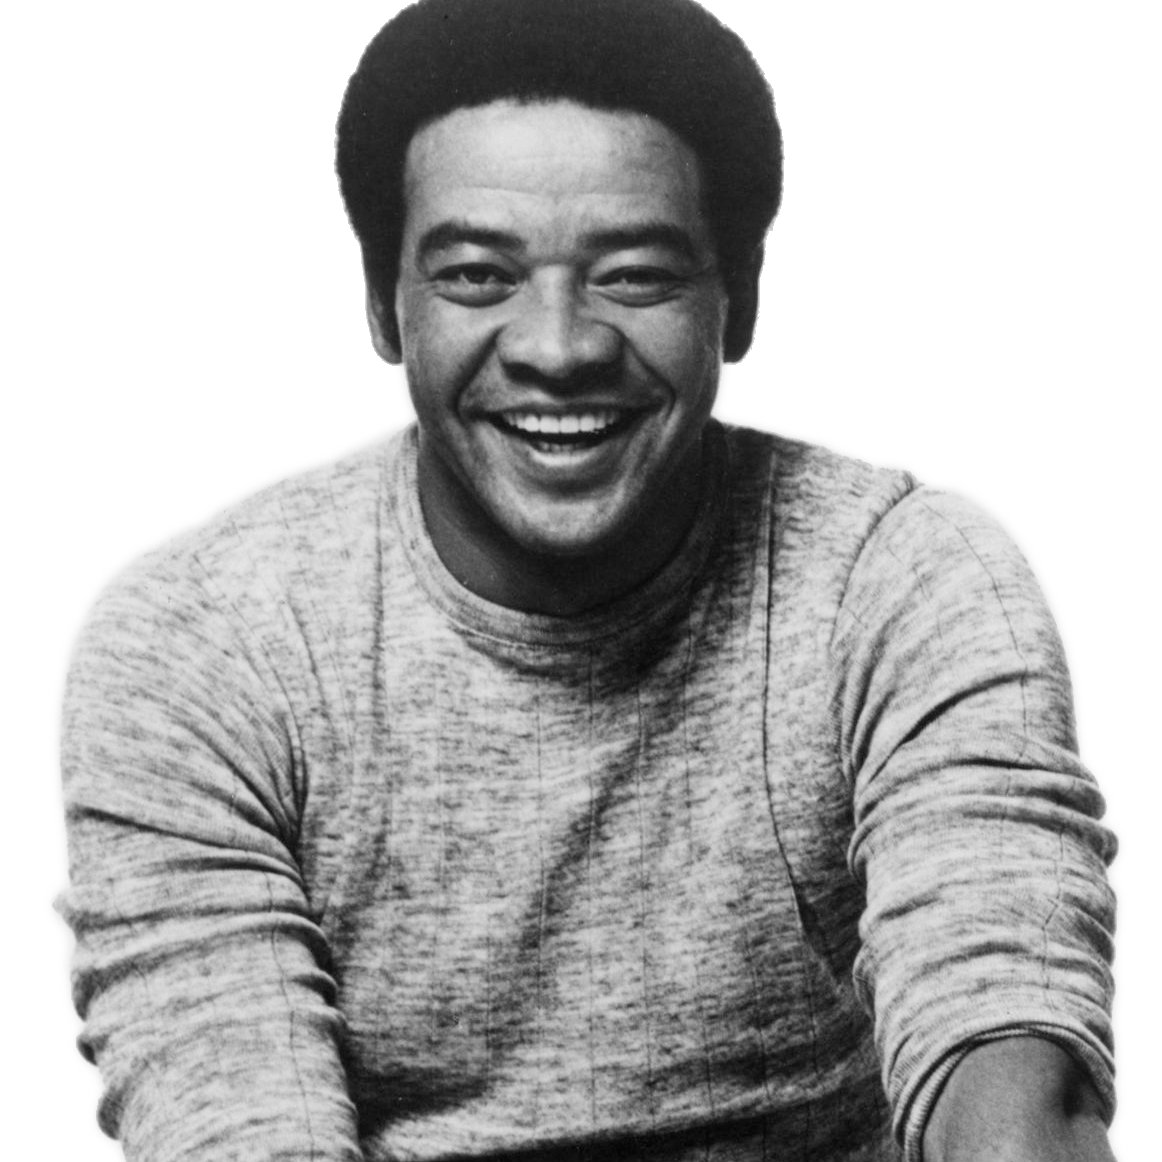 Bill Withers brought sunshine to all our lives with his timeless music. Rest in peace.